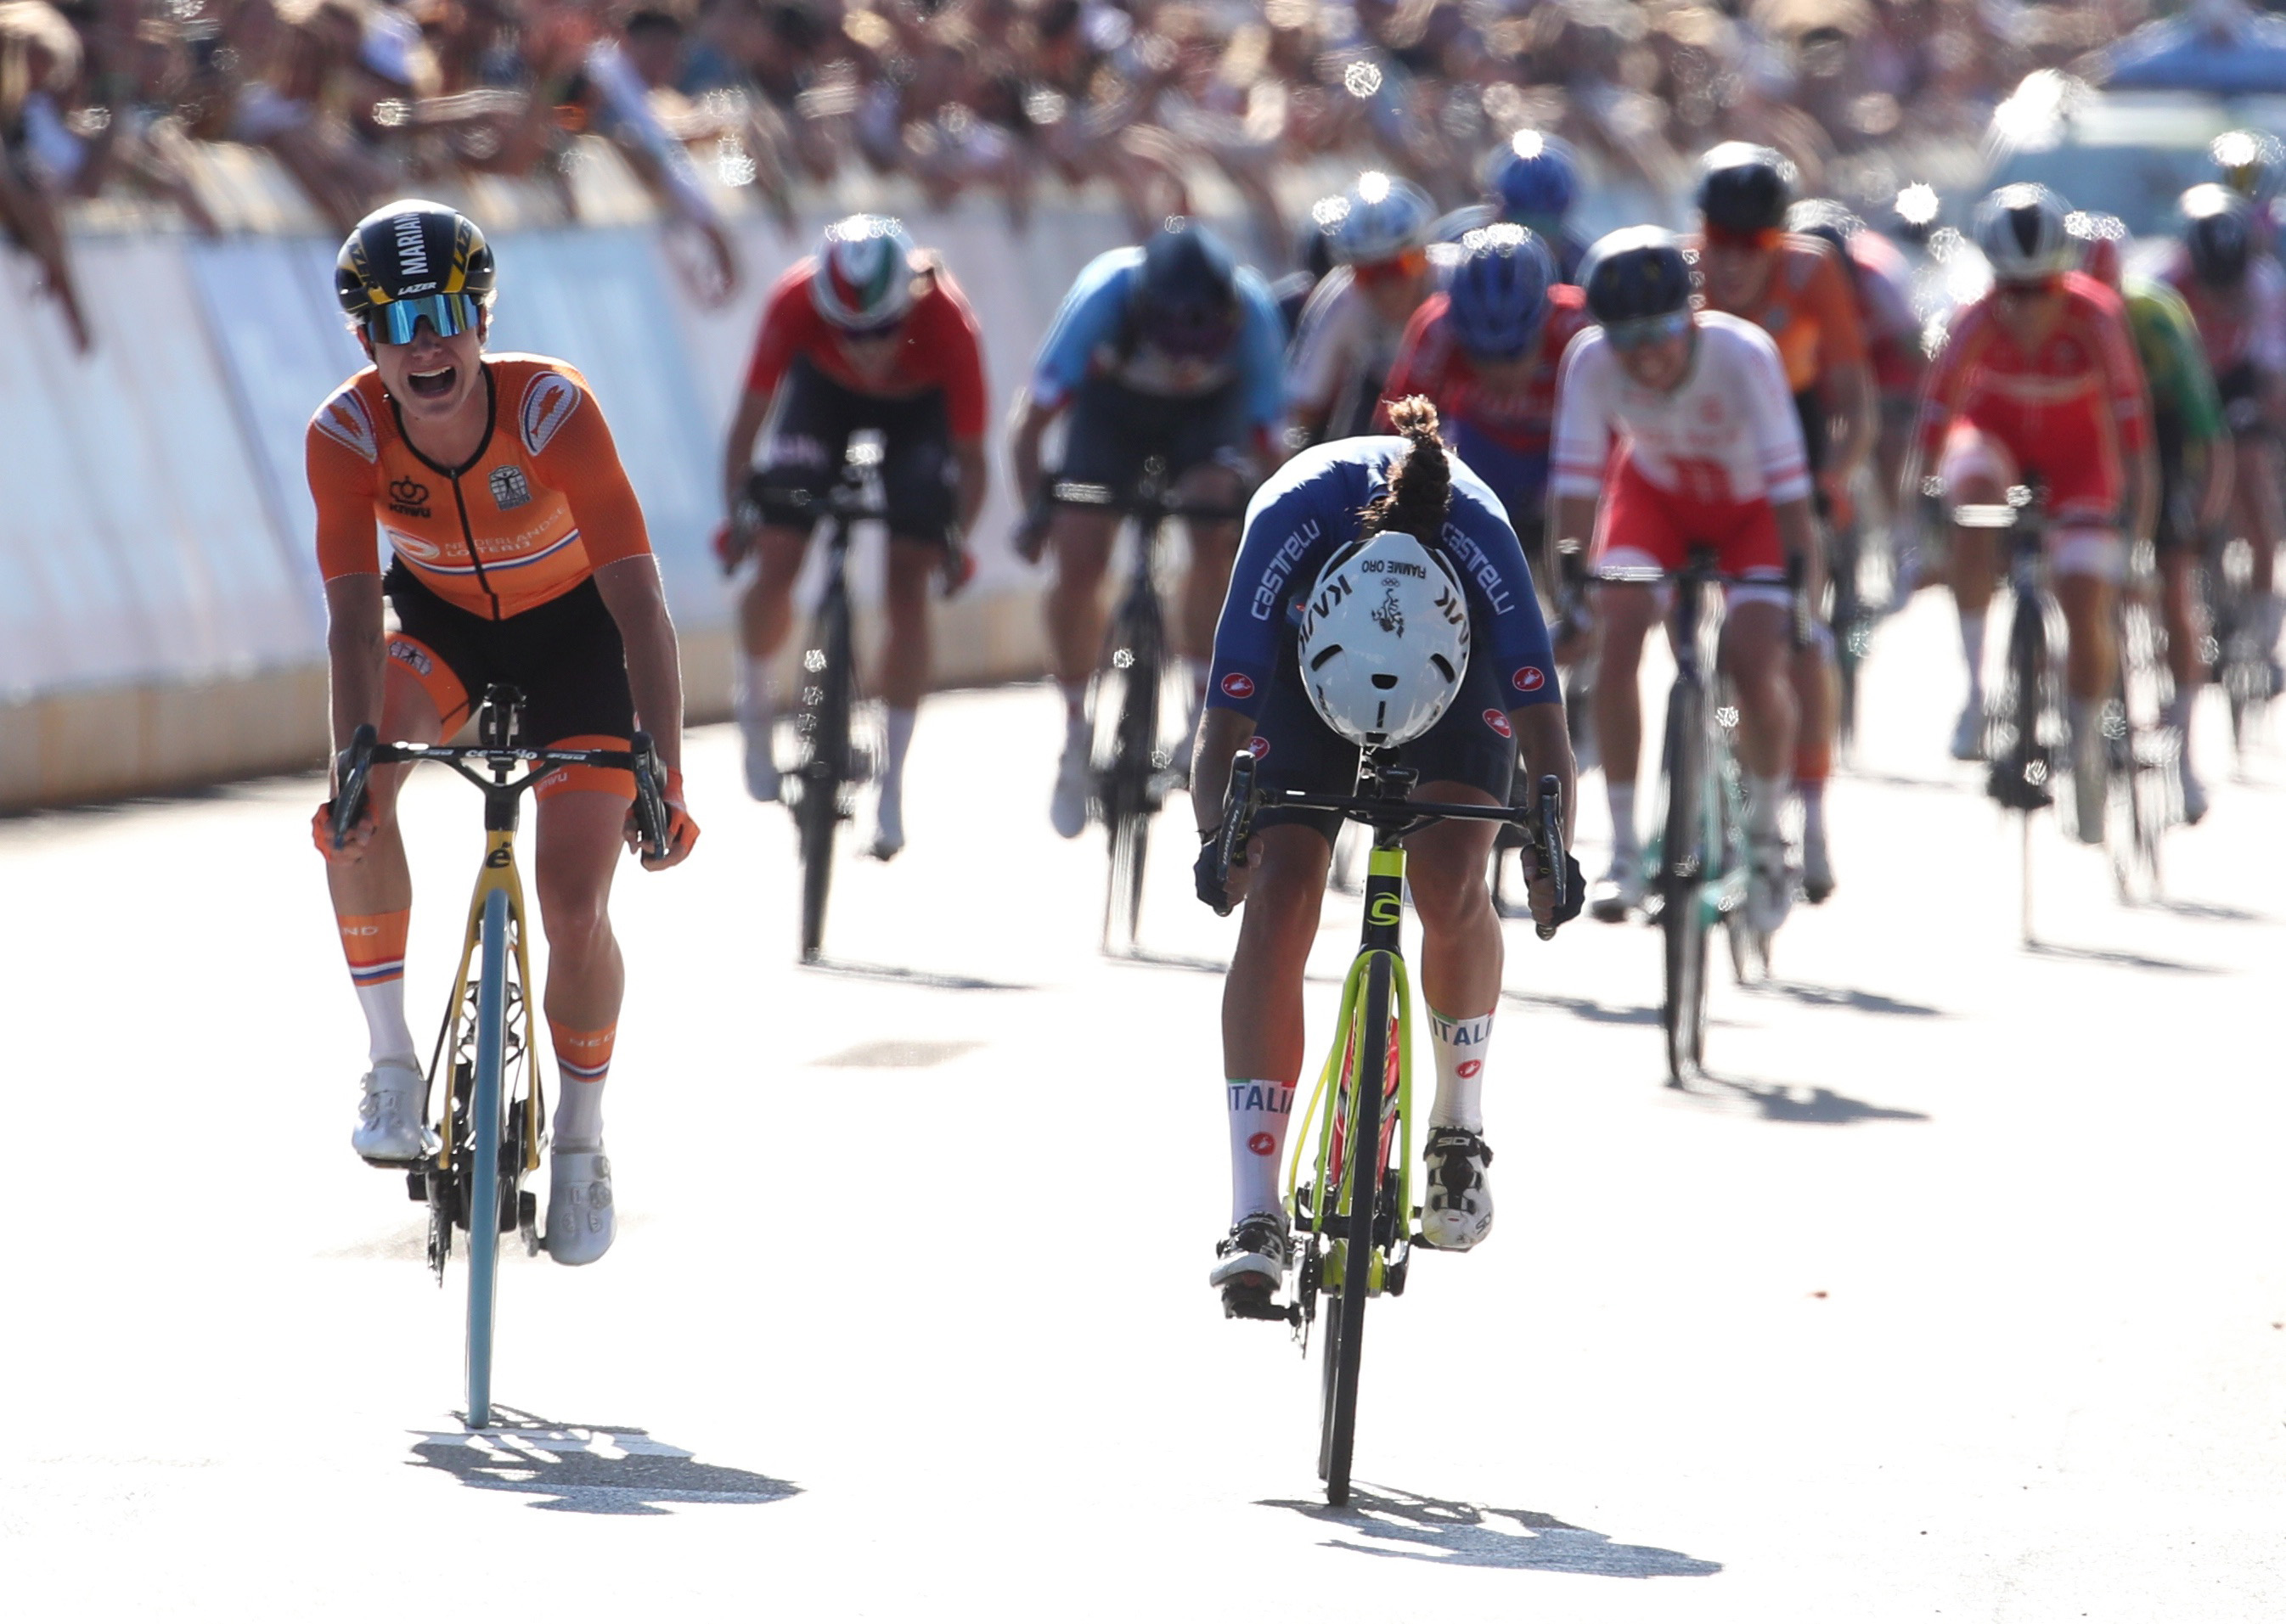 Cycling - UCI Road World Championships -  Leuven, Belgium - September 25, 2021 Italy's Elisa Balsamo crosses the finish line to win the race REUTERS/Yves Herman